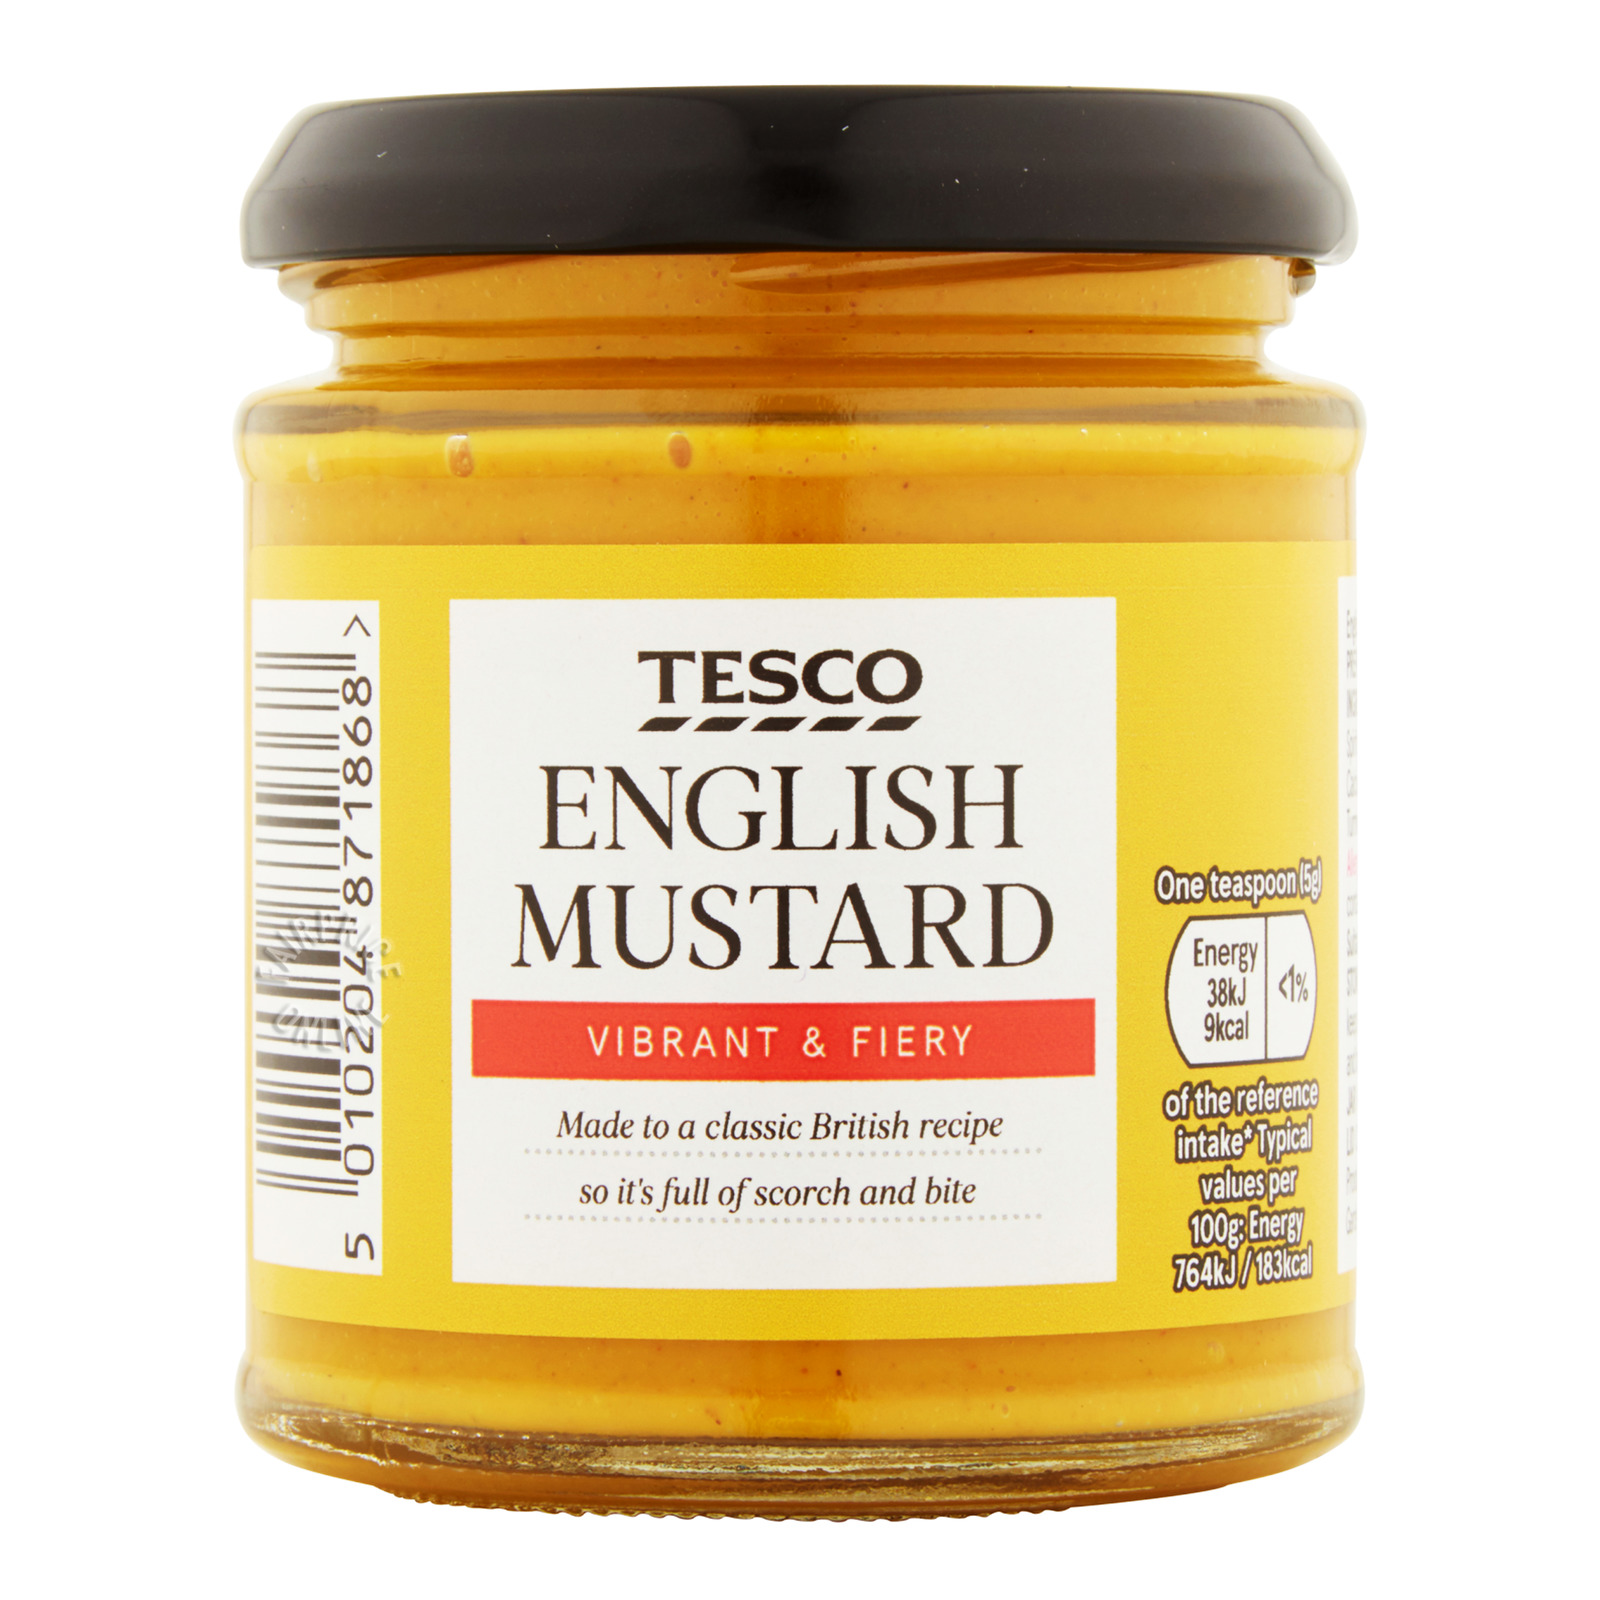 Tesco Mustard - English (Vibrant & Fiery)